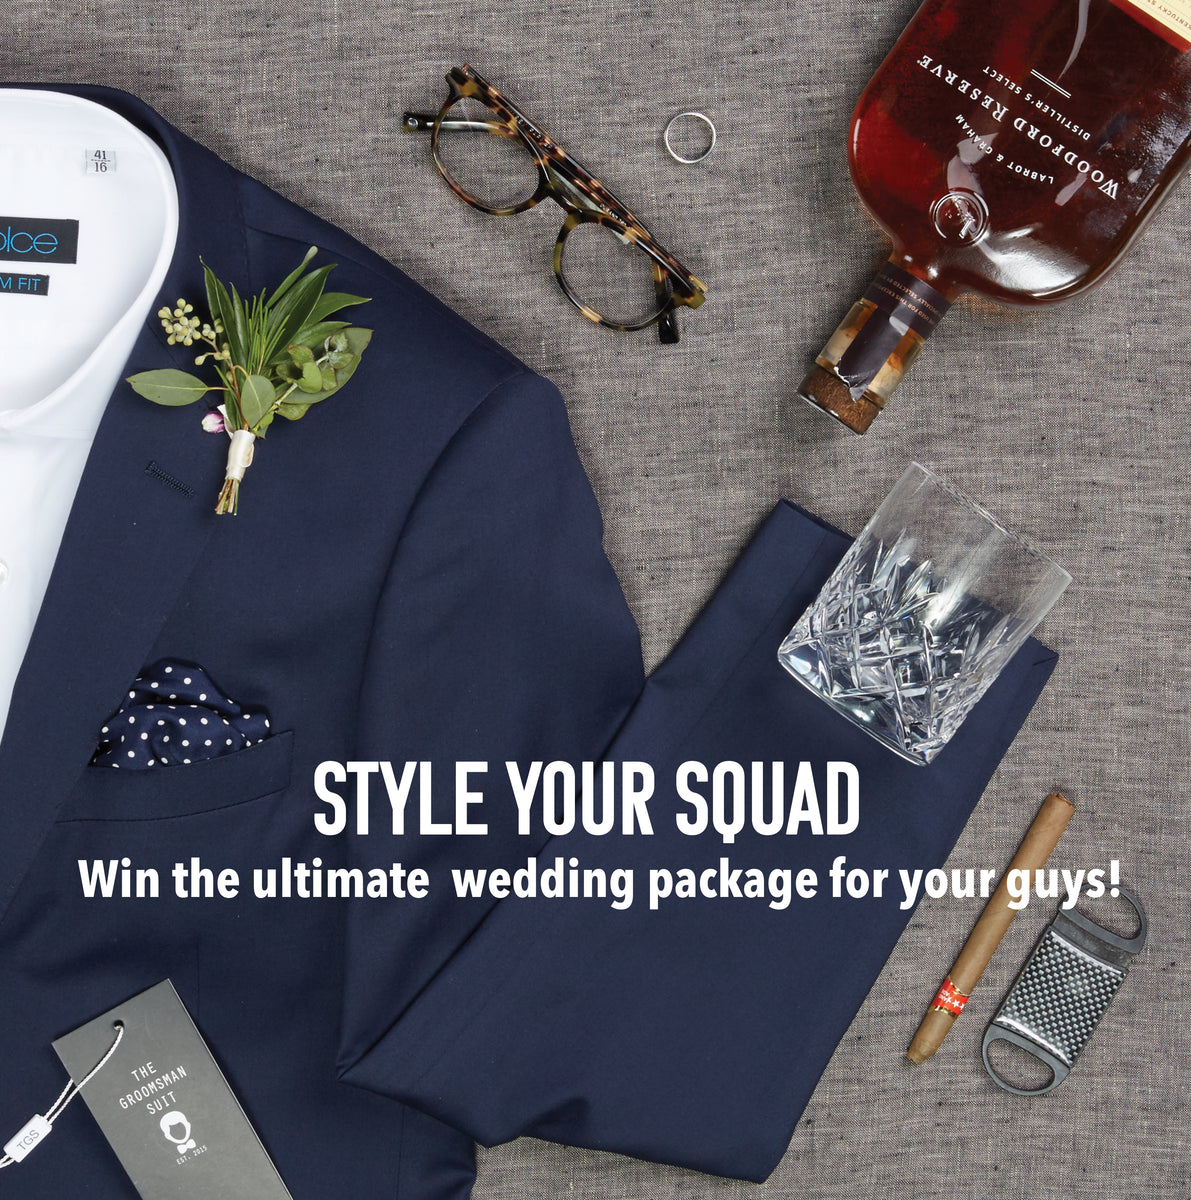 Wedding Giveaway: Enter to win men's wedding attire, groomsmen gifts, and more!